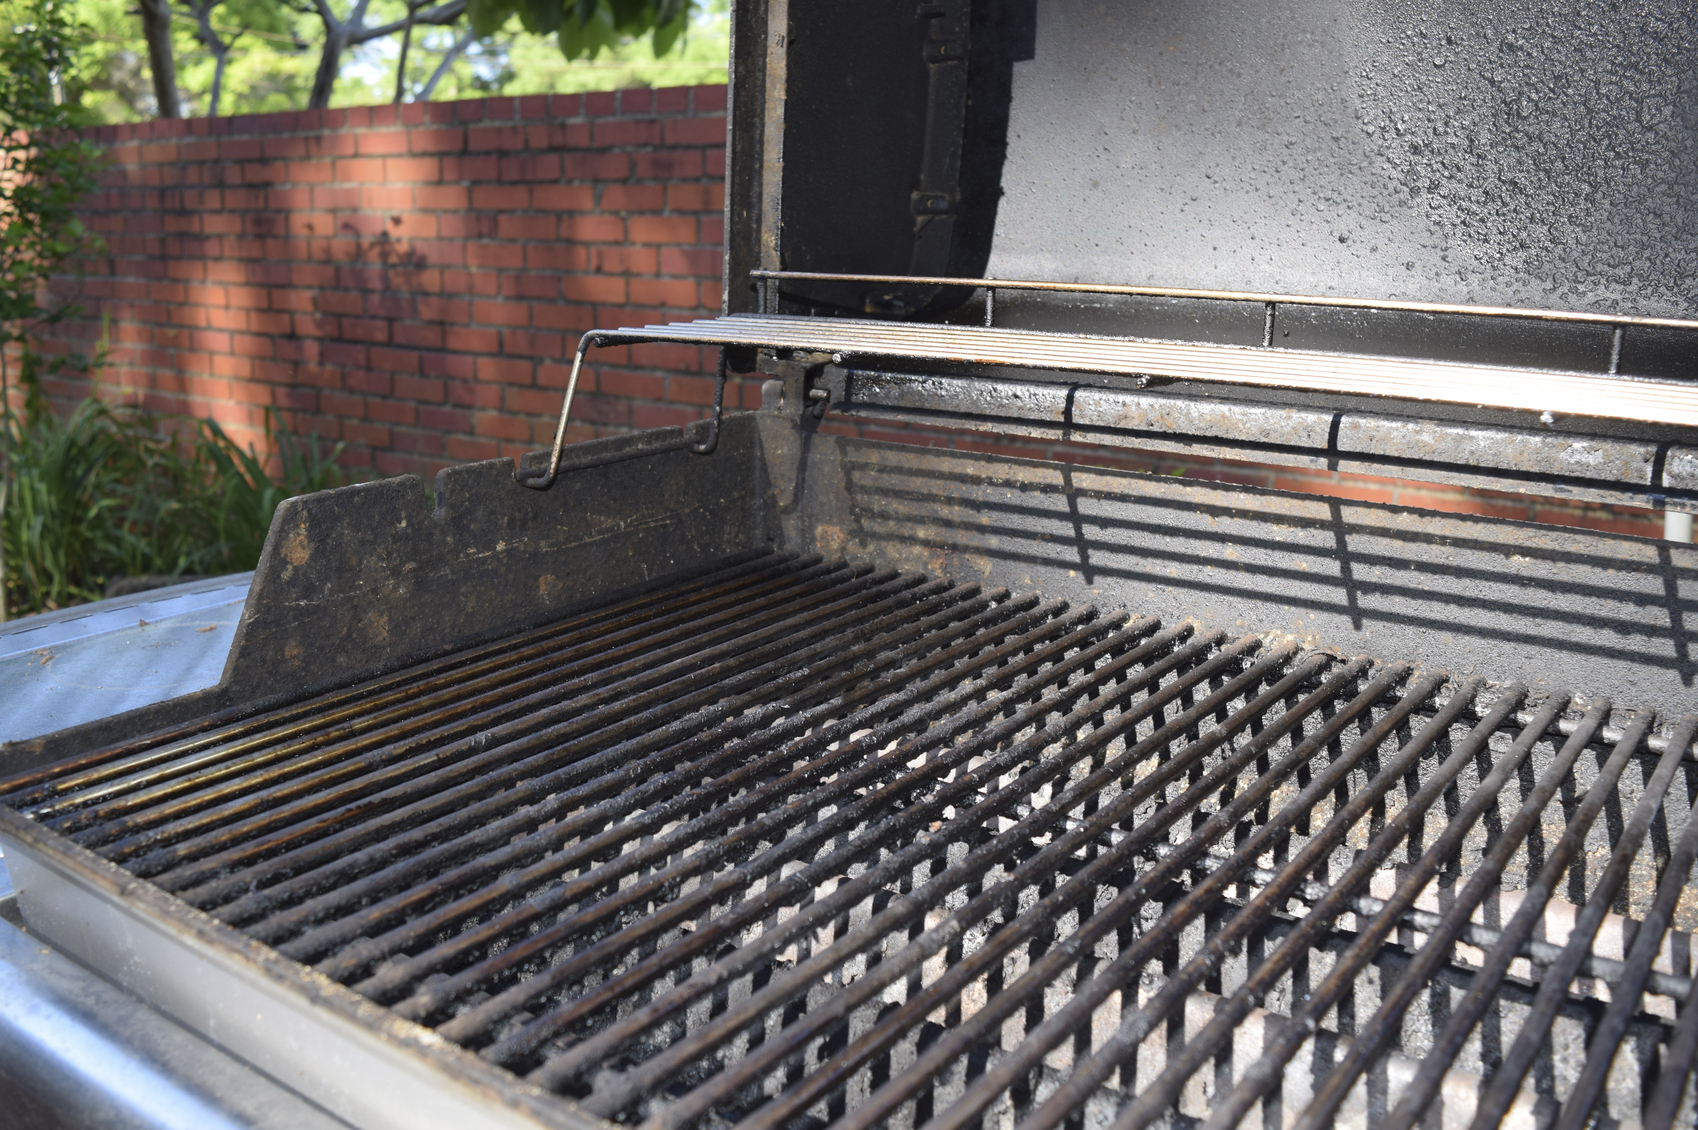 Cleaning BBQ Grill with Vinegar